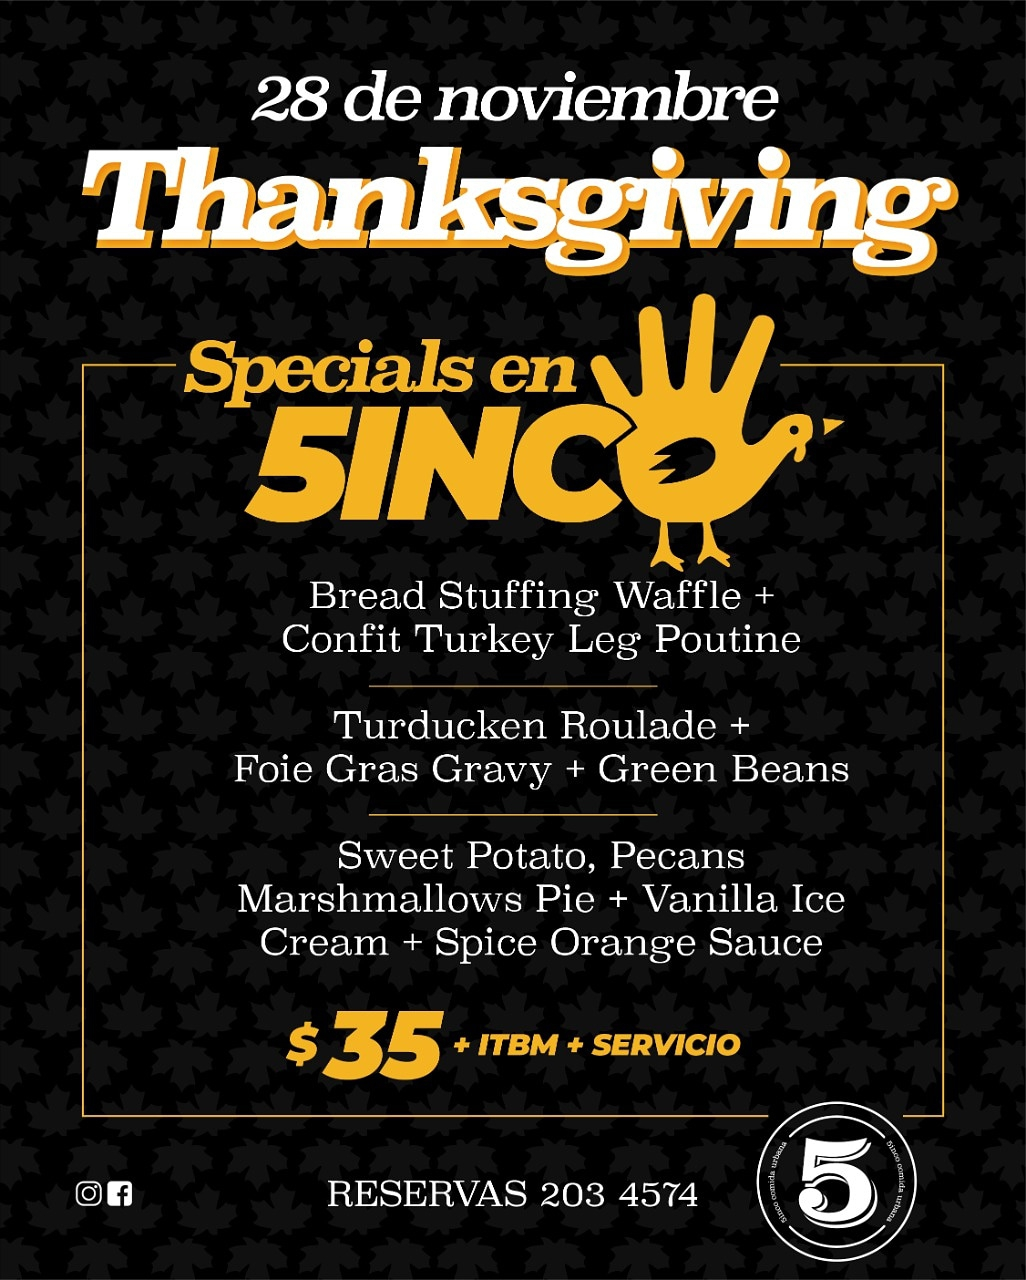 Thanksgiving Special at 5inco